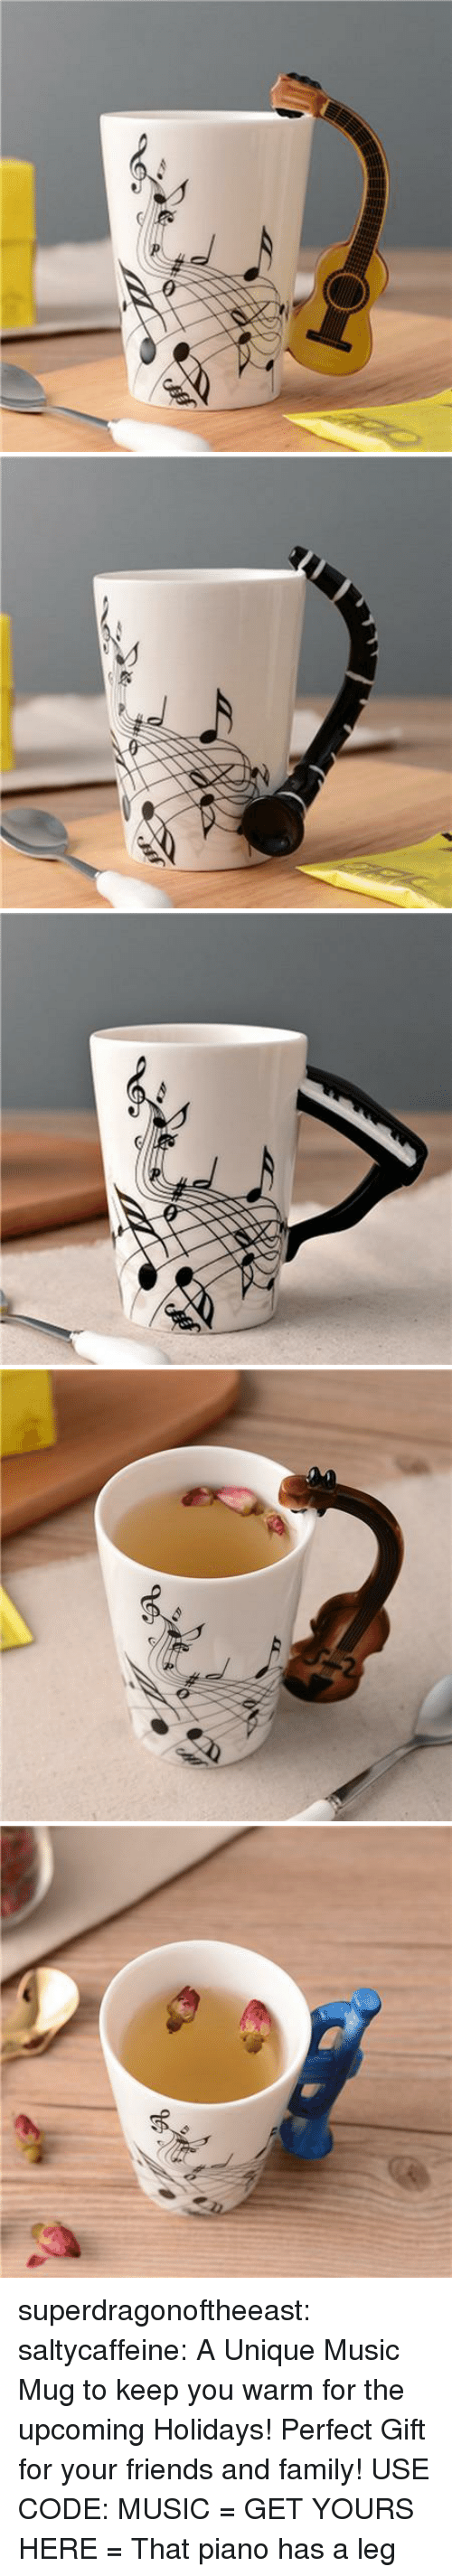 Family, Friends, and Music: superdragonoftheeast:  saltycaffeine: A Unique Music Mug to keep you warm for the upcoming Holidays! Perfect Gift for your friends and family! USE CODE: MUSIC = GET YOURS HERE =   That piano has a leg